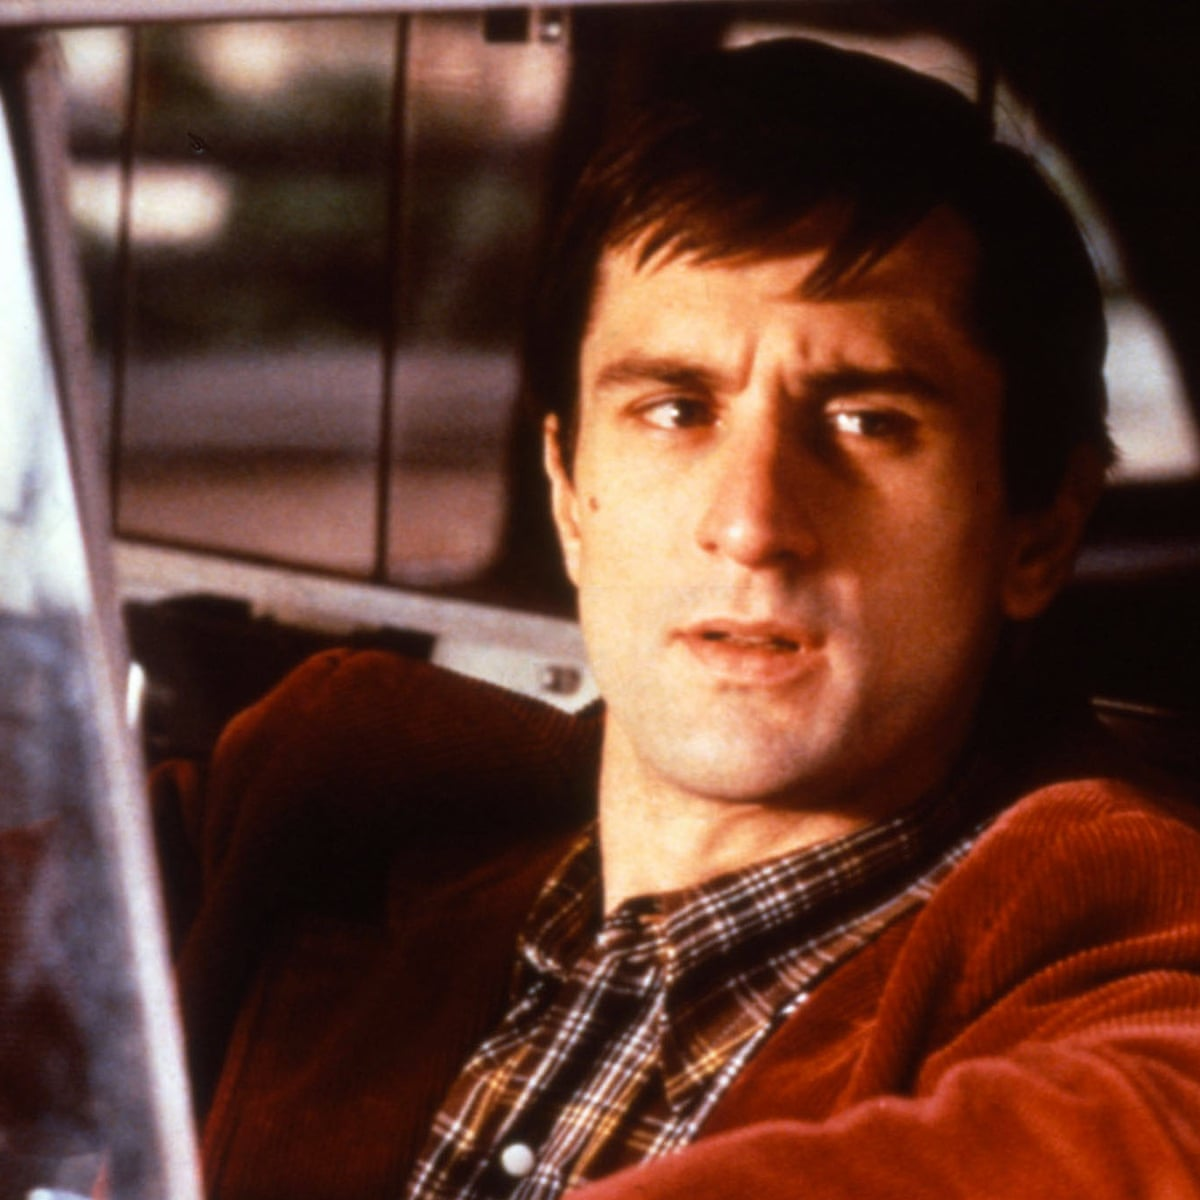 Martin Scorsese Robert De Niro And Jodie Foster Set For Taxi Driver Reunion Taxi Driver The Guardian